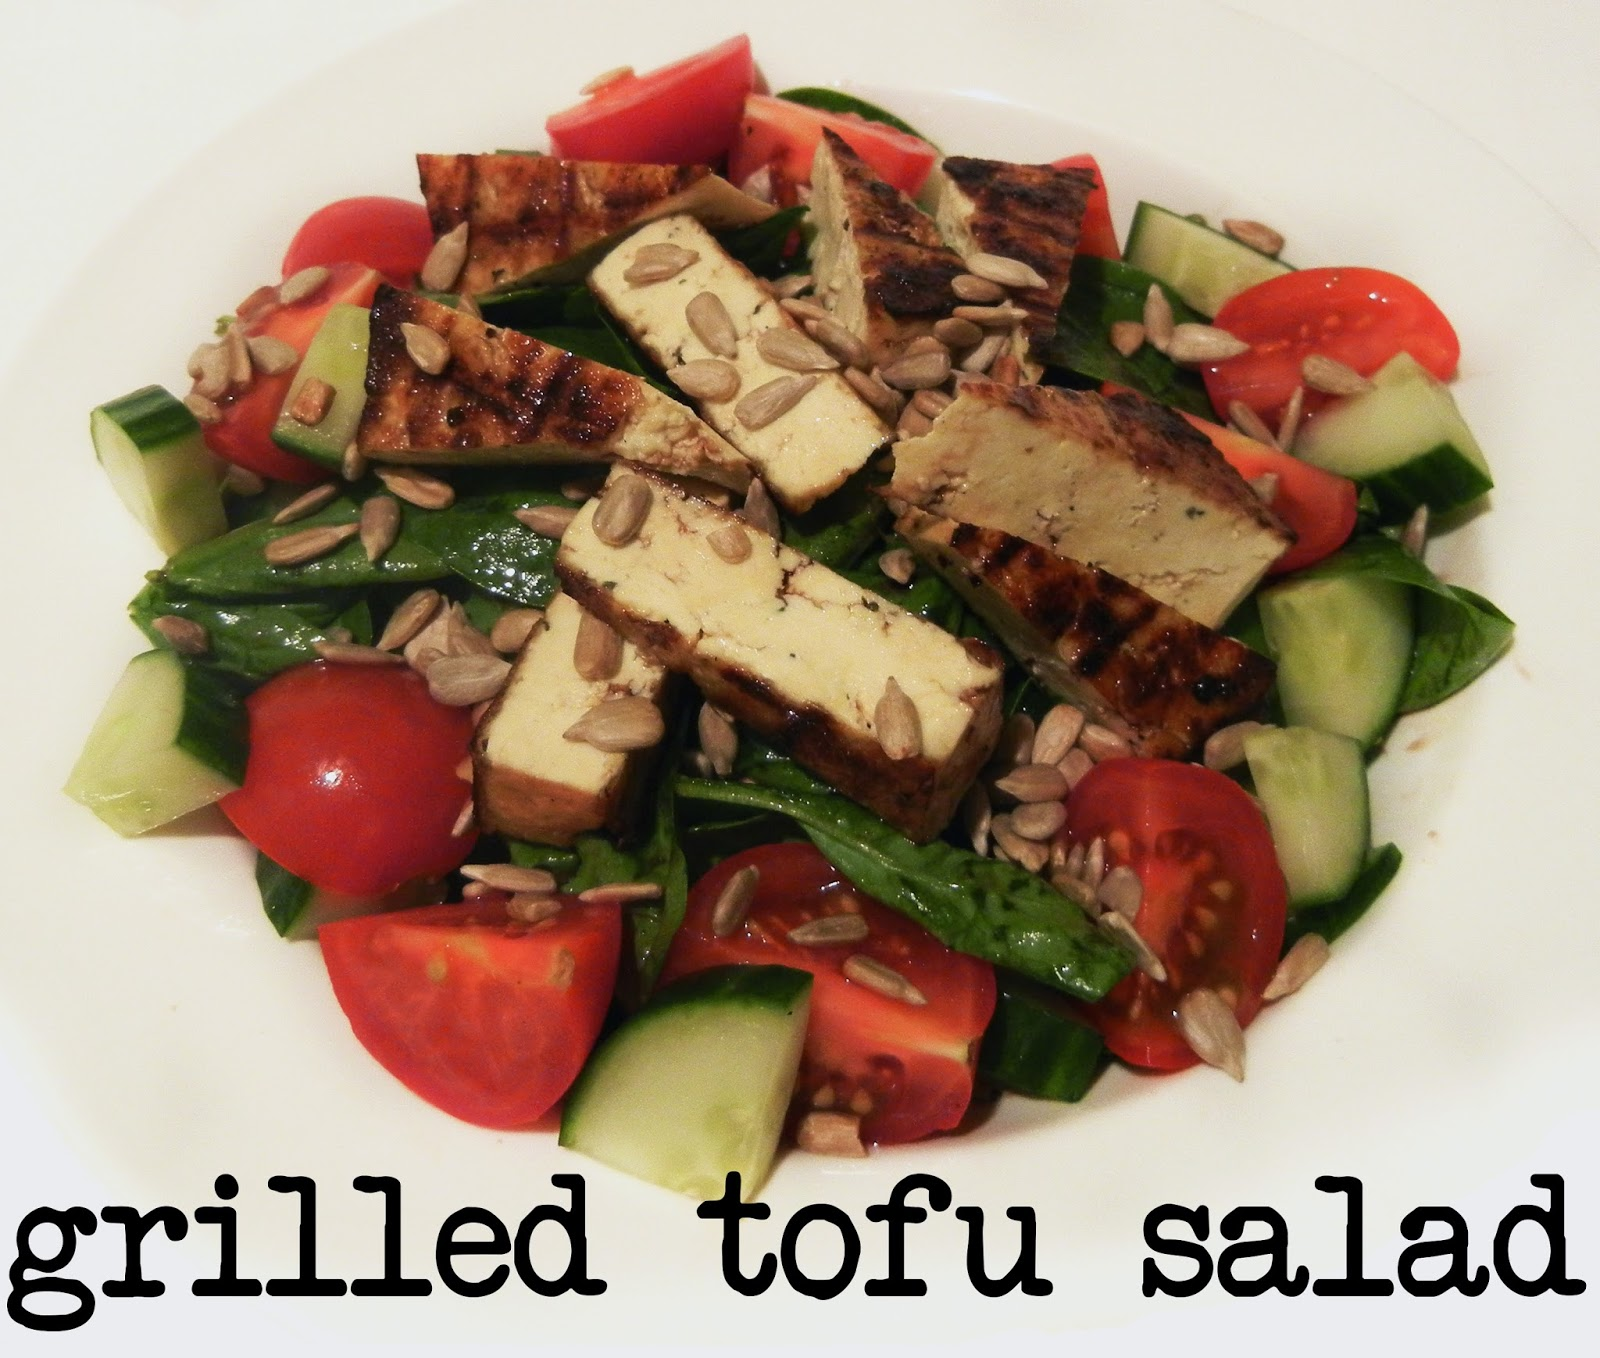 Derek's Kitchen: Grilled Tofu Salad